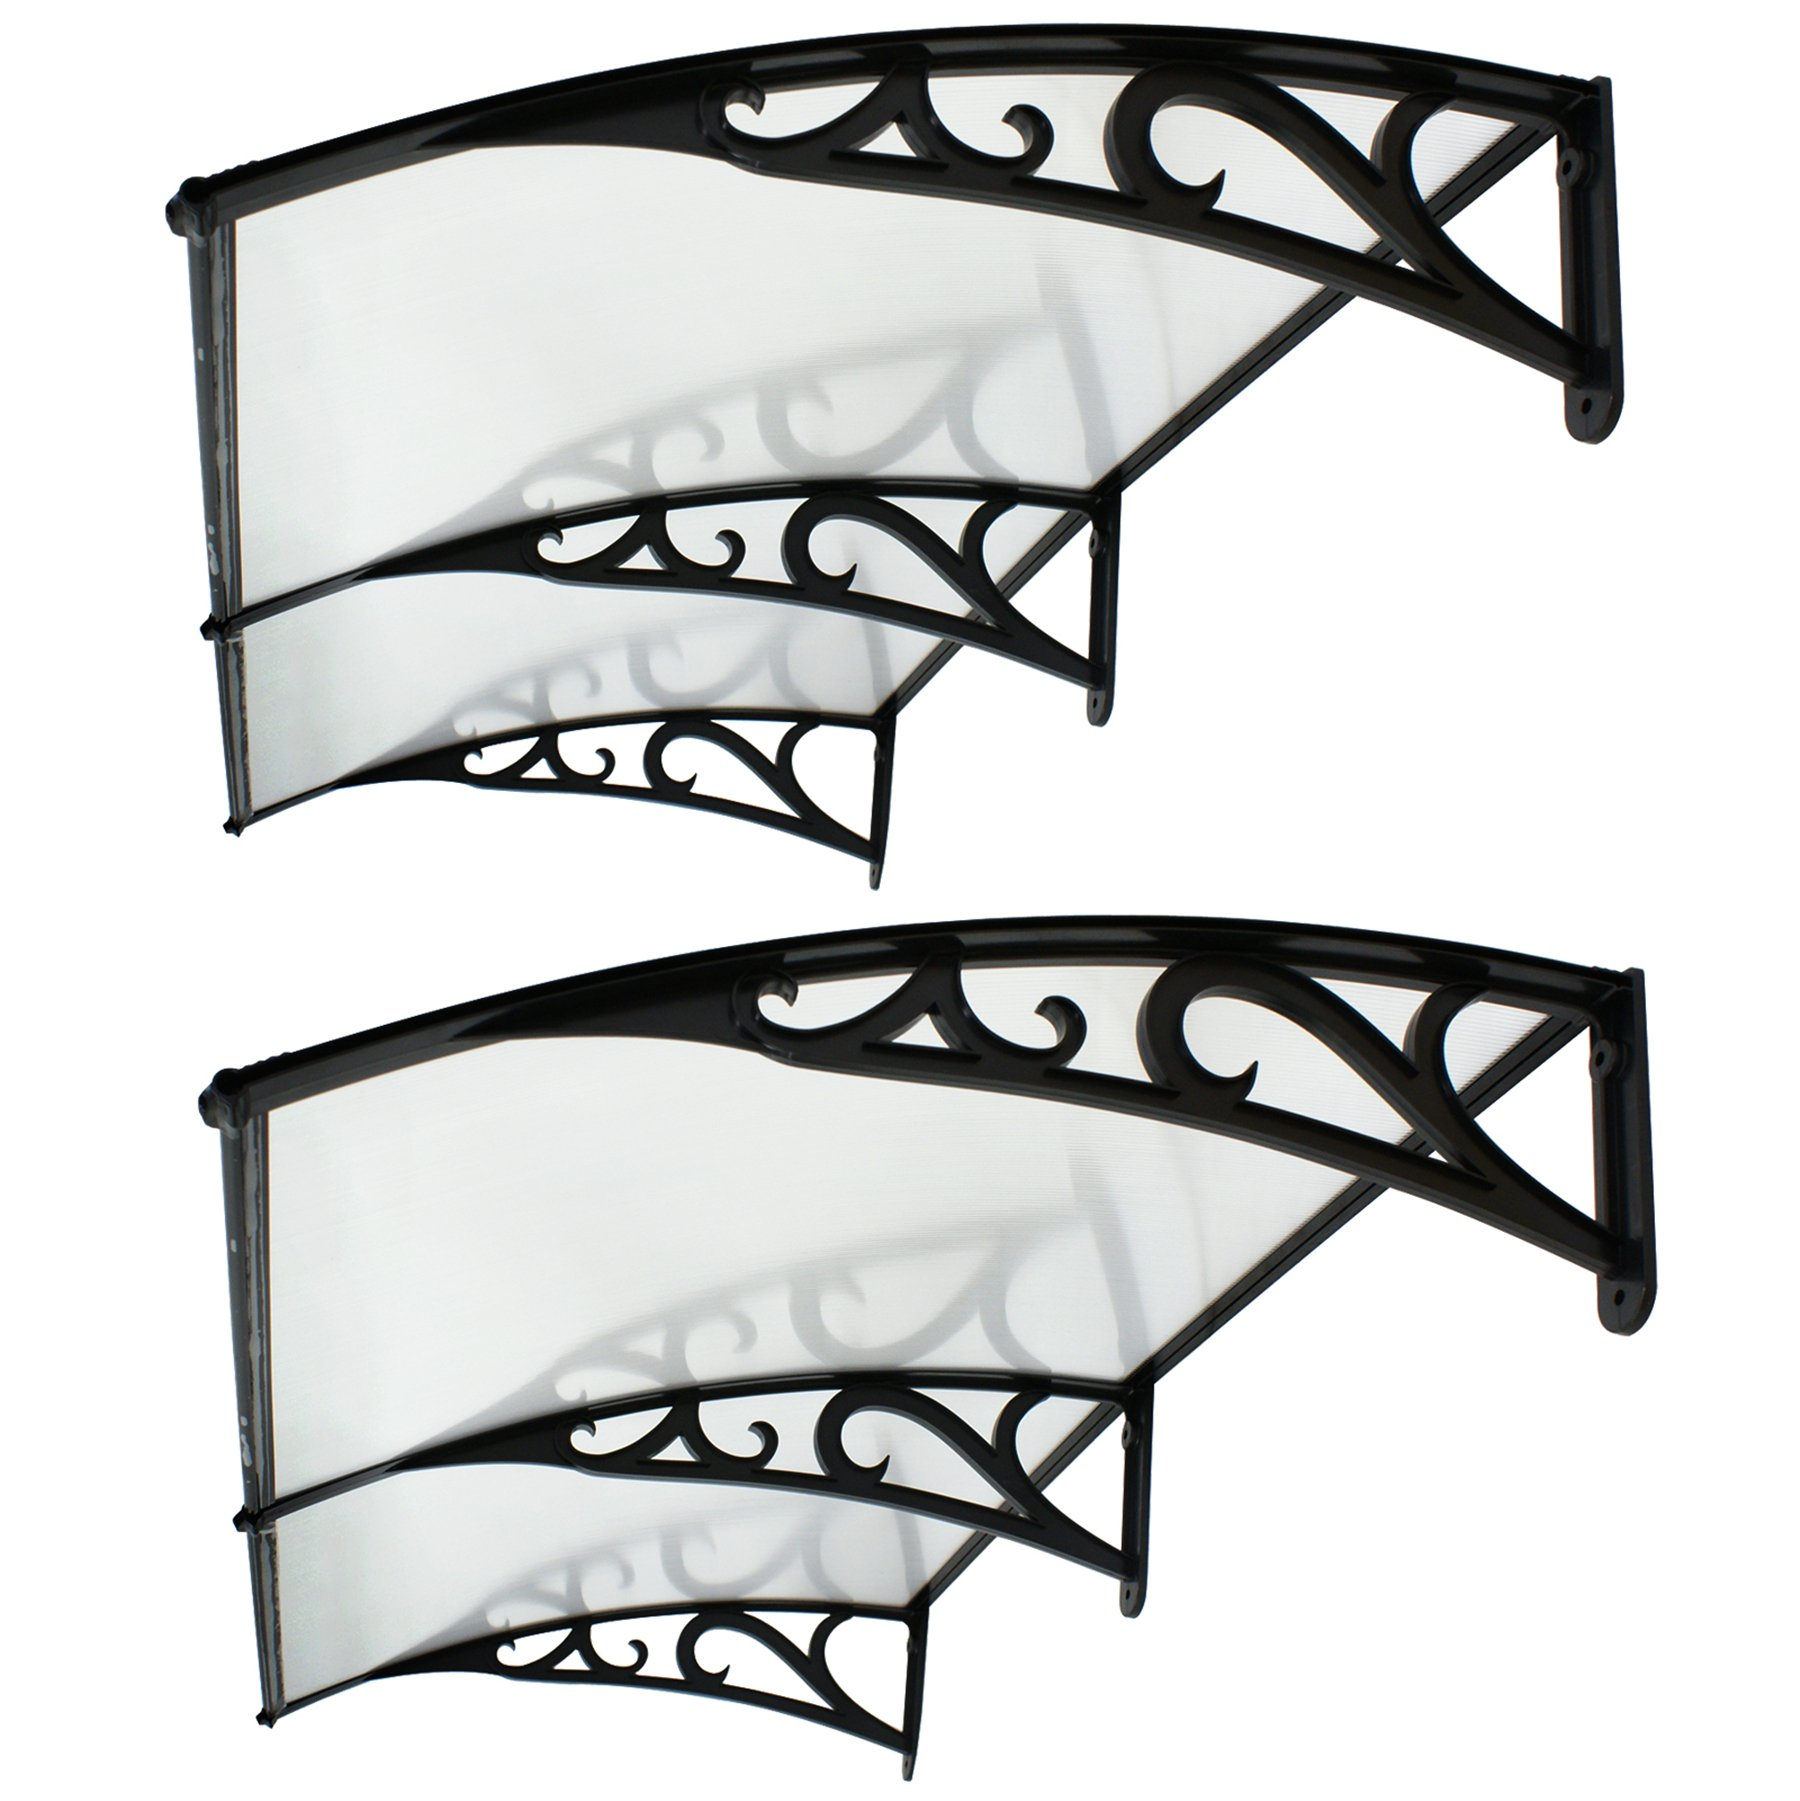 F2C Set of 2 1mx2m DIY Outdoor Polycarbonate Garden Front Door 40''x 80'' Window Awning Patio Cover Canopy UV Rain Snow Protection (2PCS Frame of the pattern)